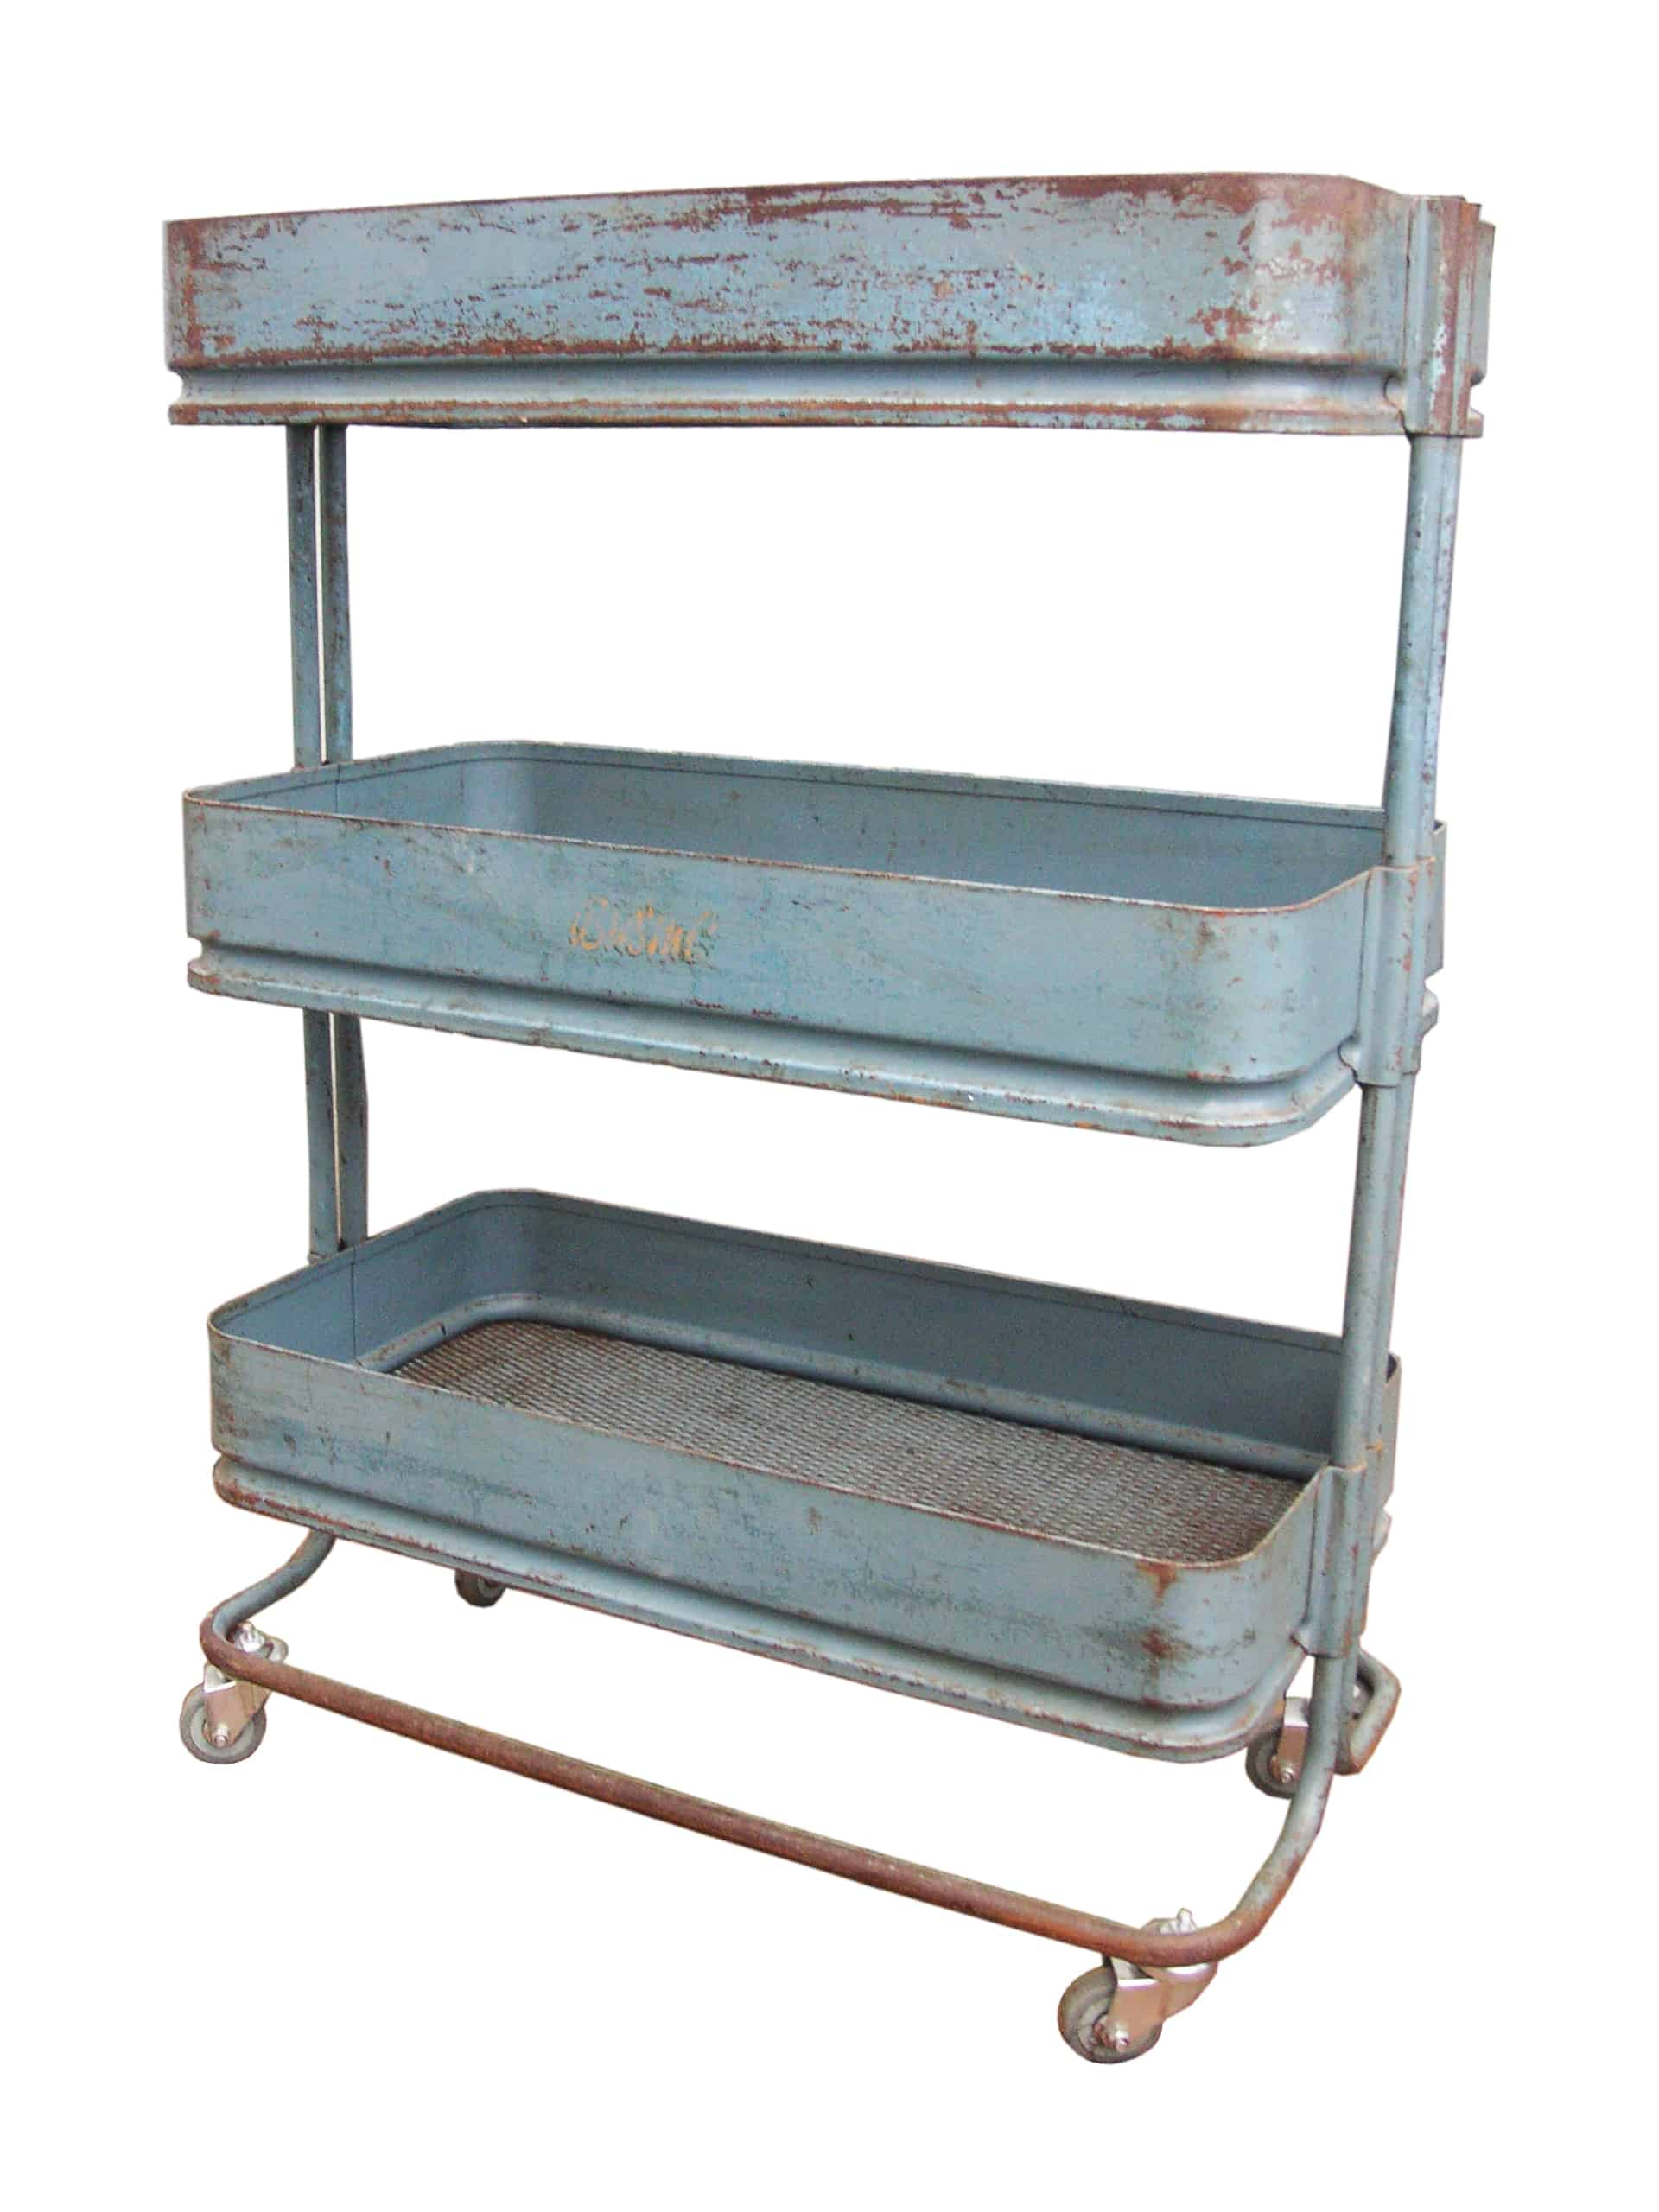 Vintage Textile Factory Trolley from Bubbledrum